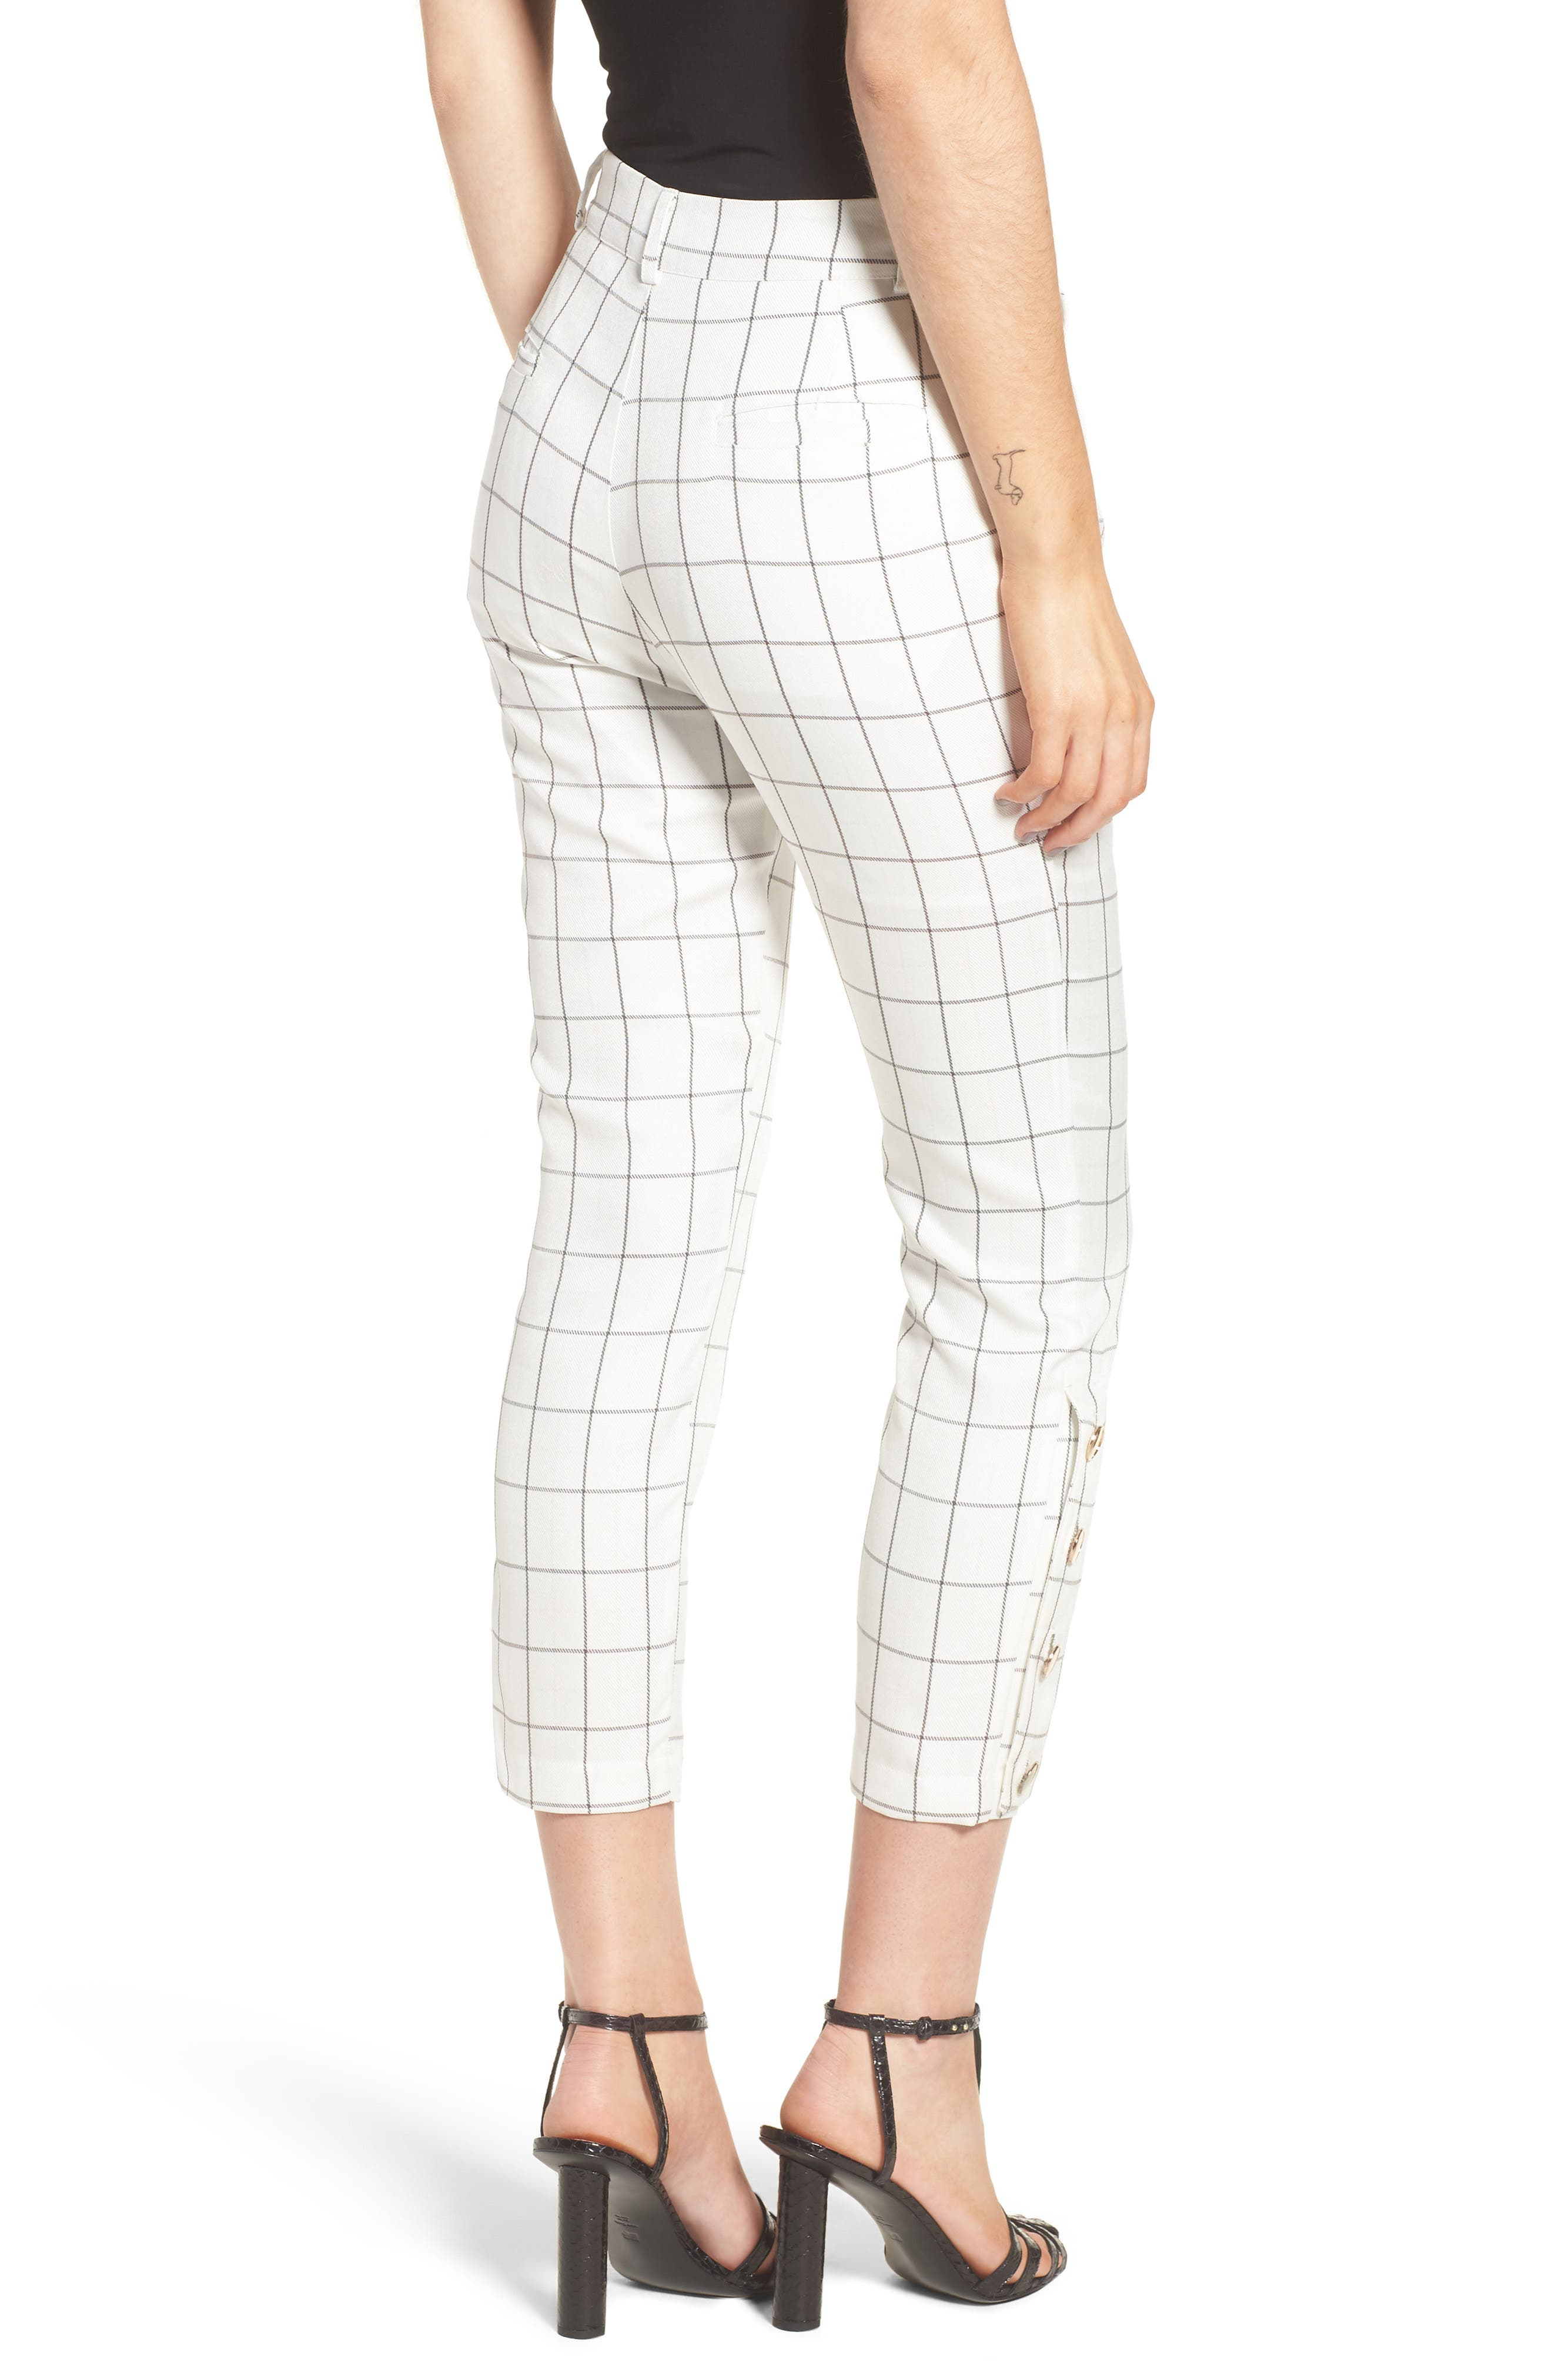 Chriselle x J.O.A. High Waist Ankle Skinny Trousers,                             Alternate thumbnail 4, color,                             White